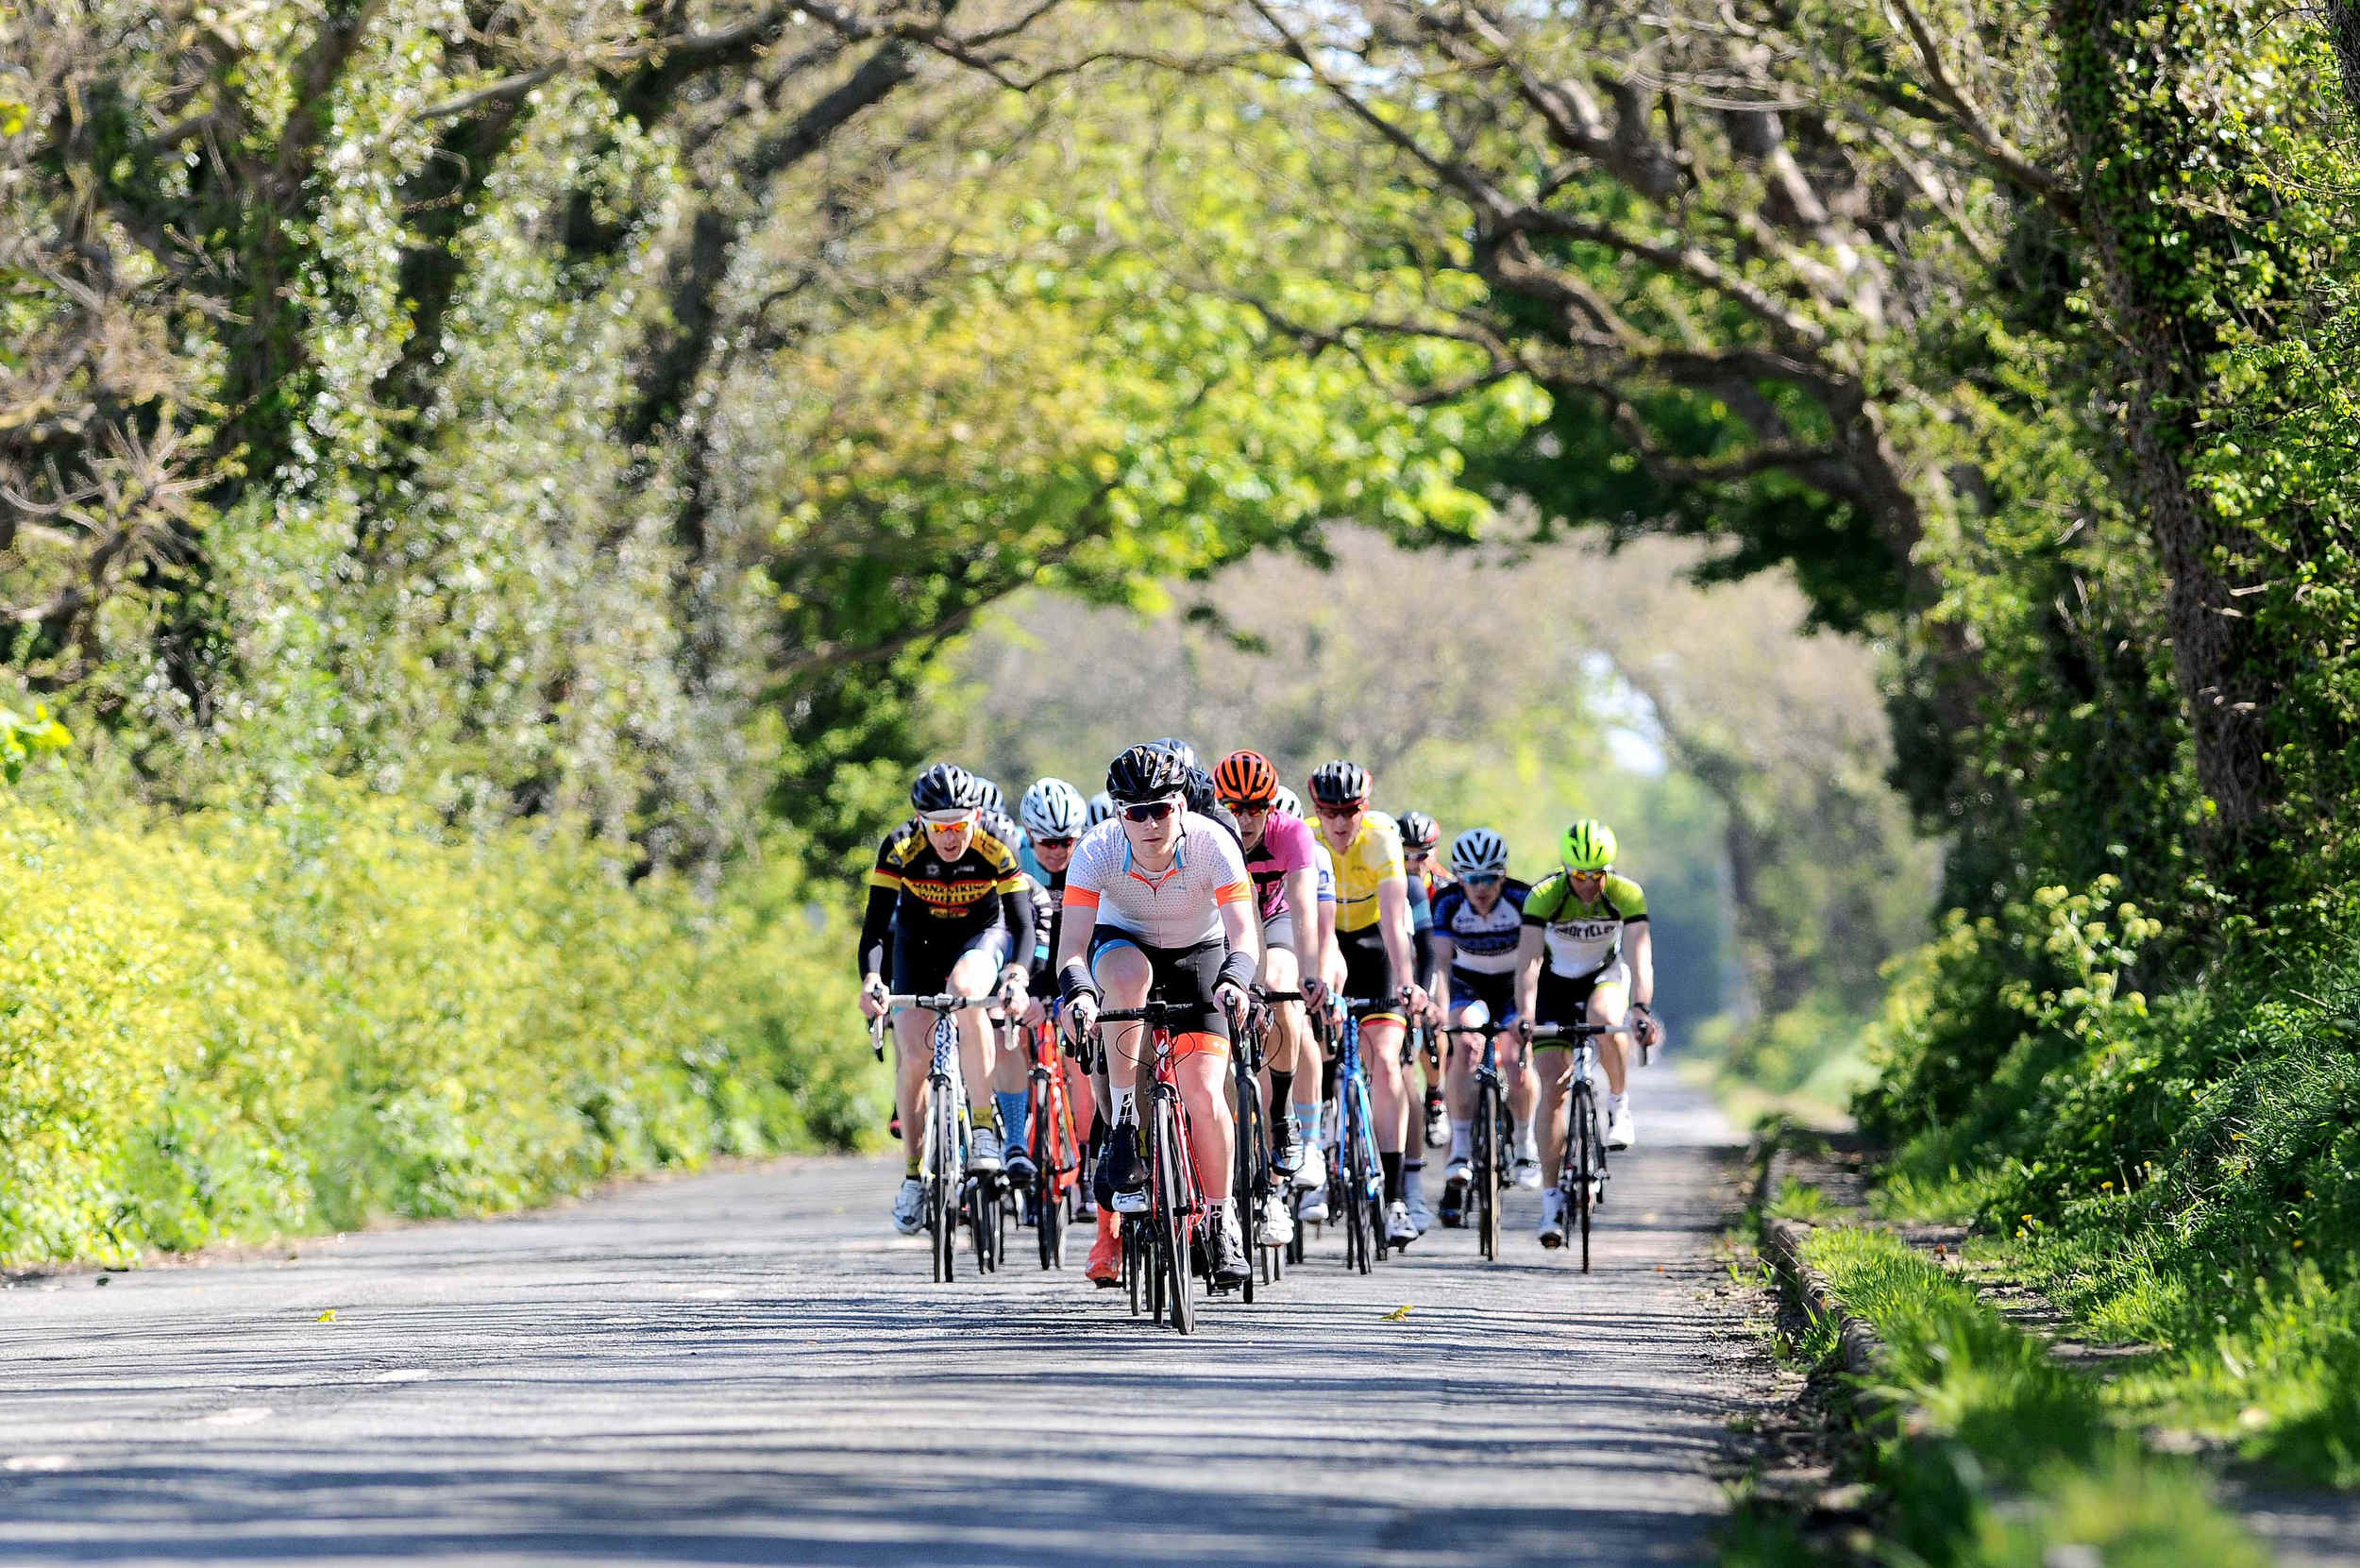 Sunday of Isle of Man Cyclefest 2016 based at Milntown, including the 80-mile Gran Fondo event